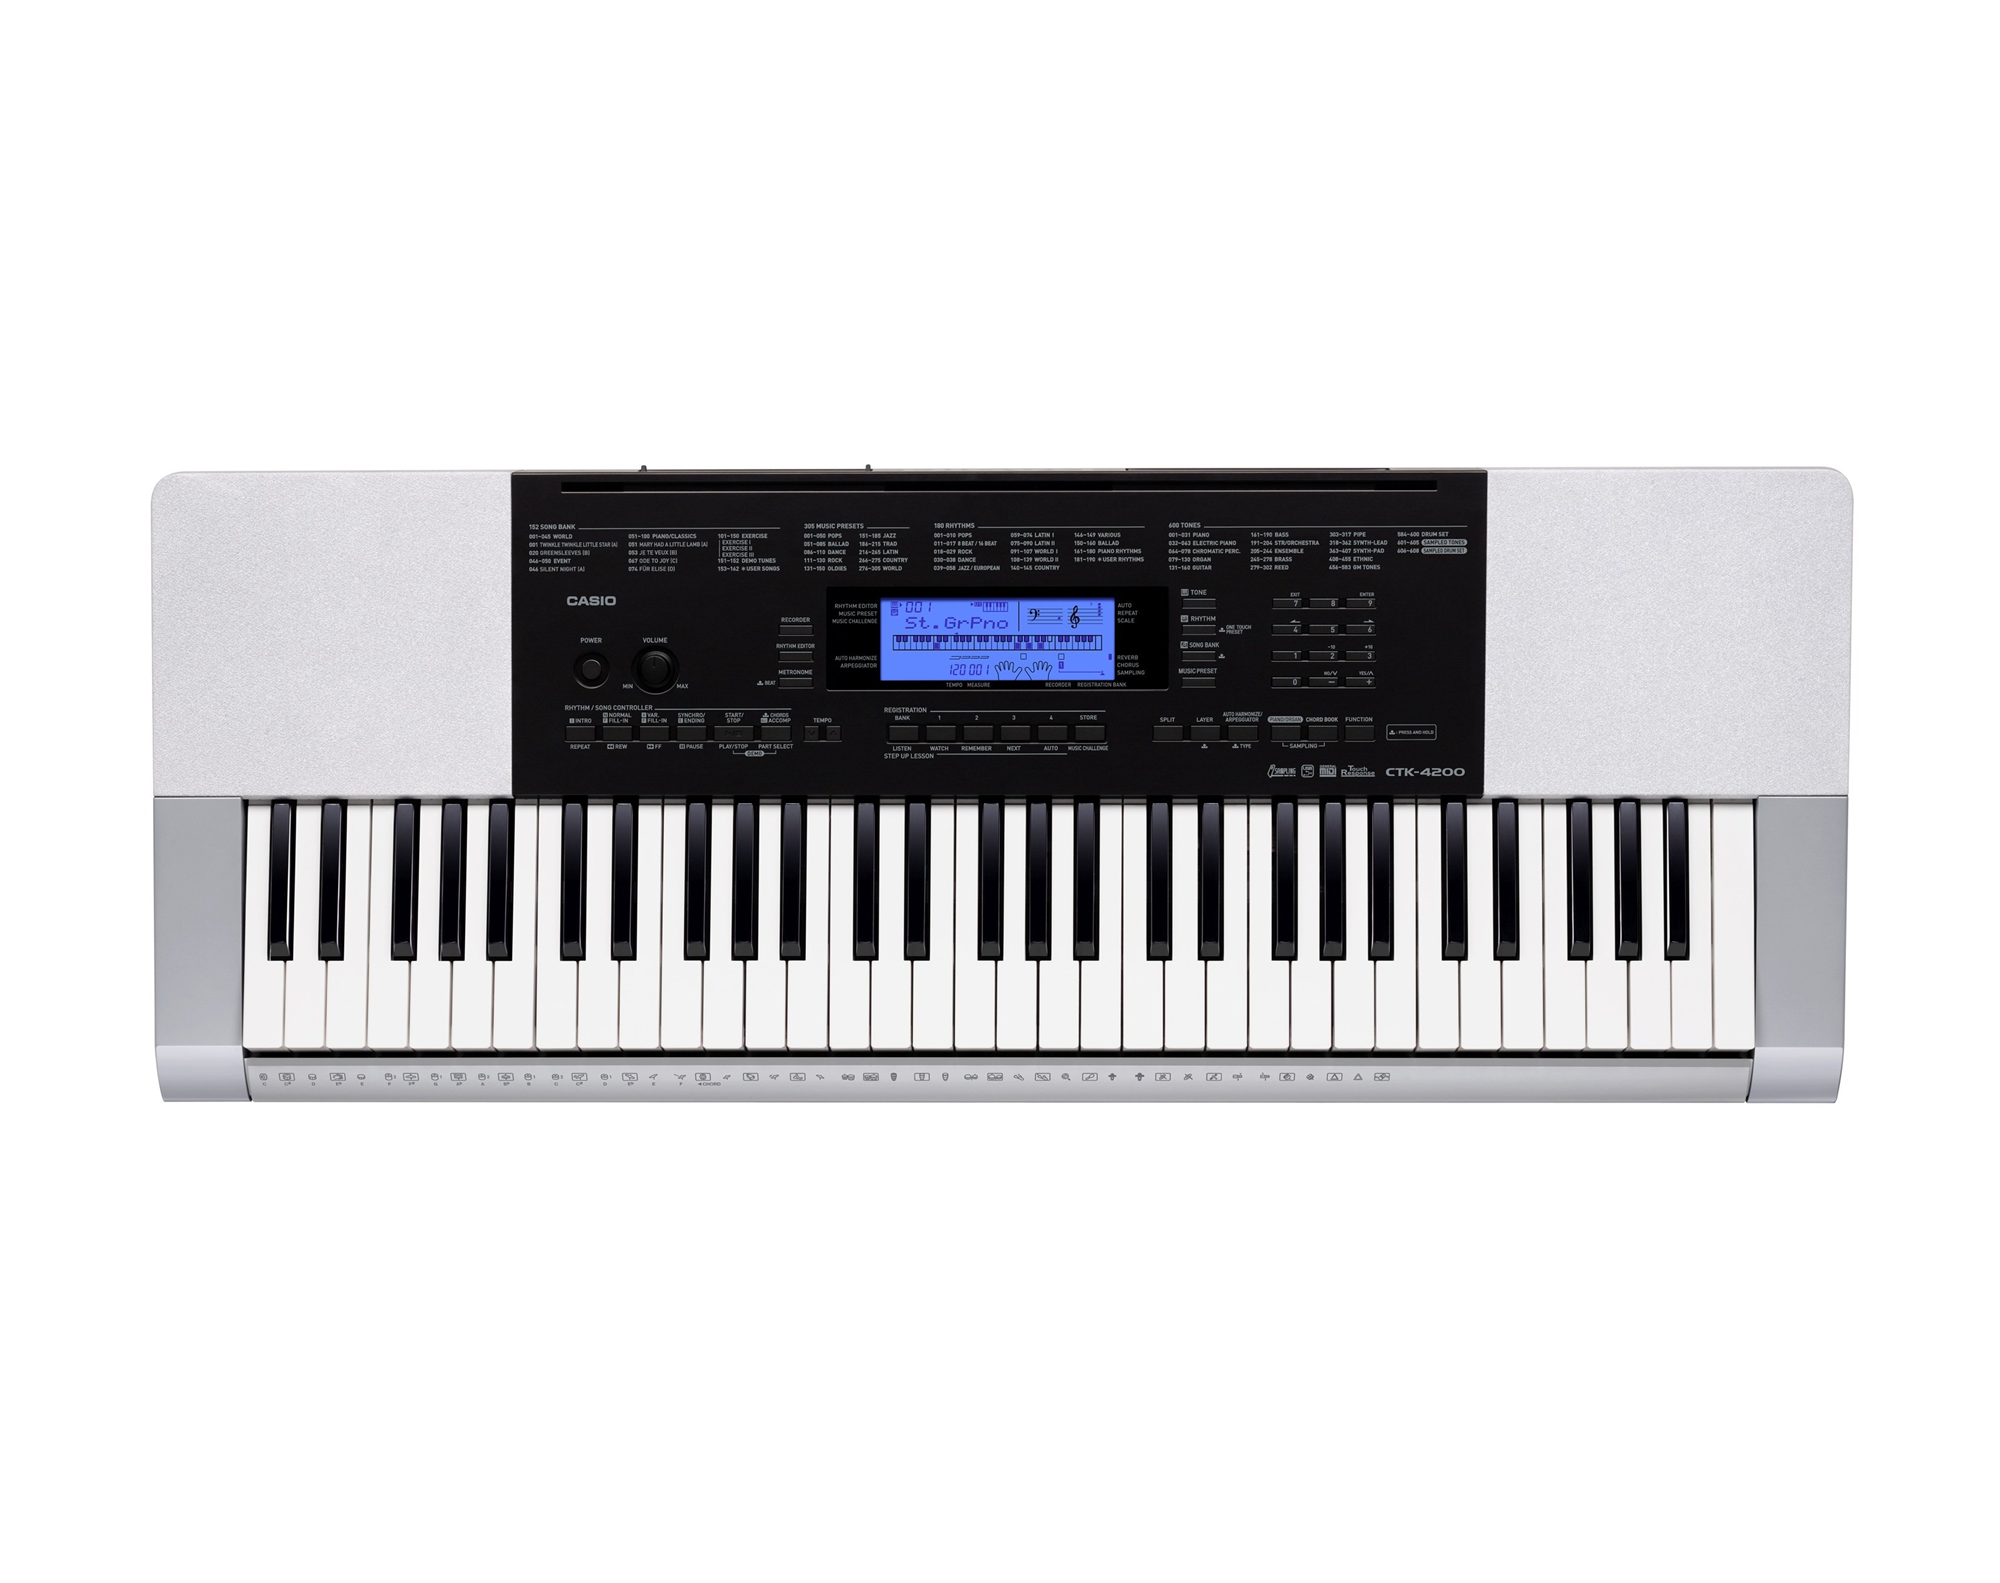 https://www.danorgan.com.vn/upload/images_products/large/Dan-Organ-Casio-CTK-4200.jpg